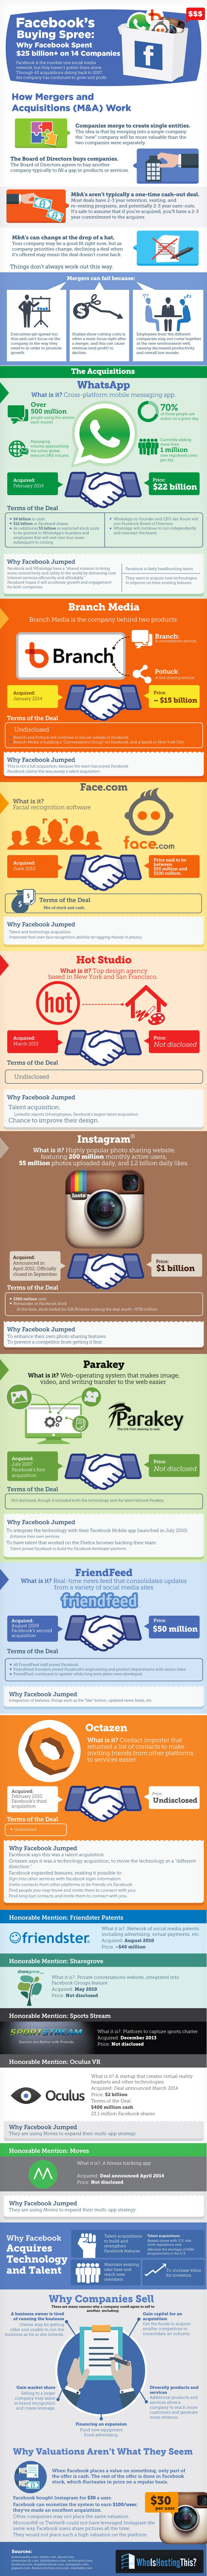 From Instagram to WhatsApp: A Snapshot of Facebook's Acquisitions (Infographic)